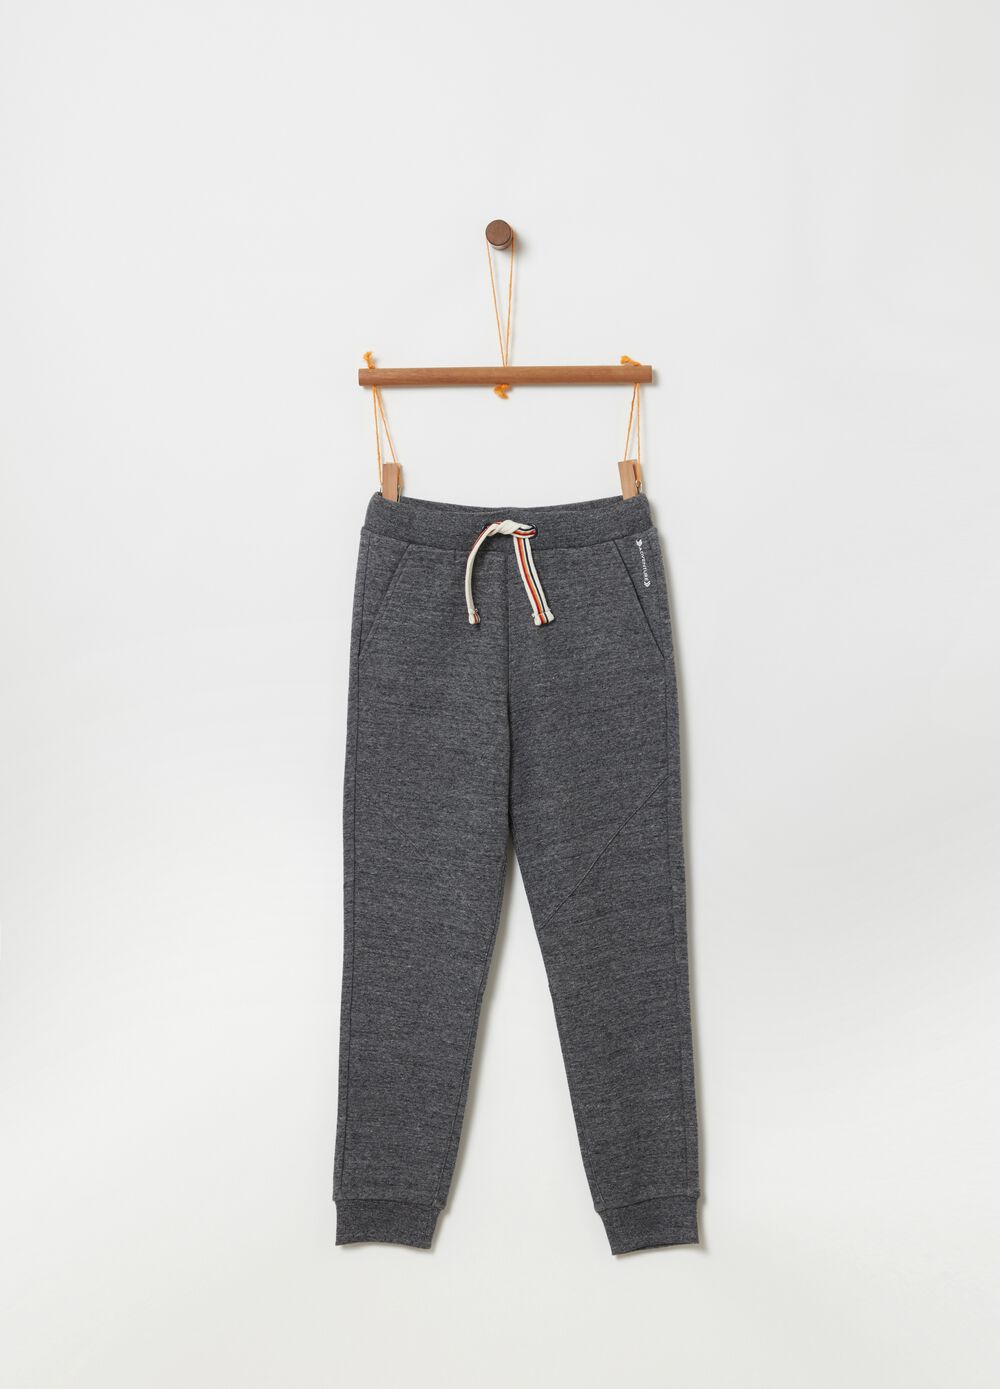 Mélange joggers with drawstring and cuts